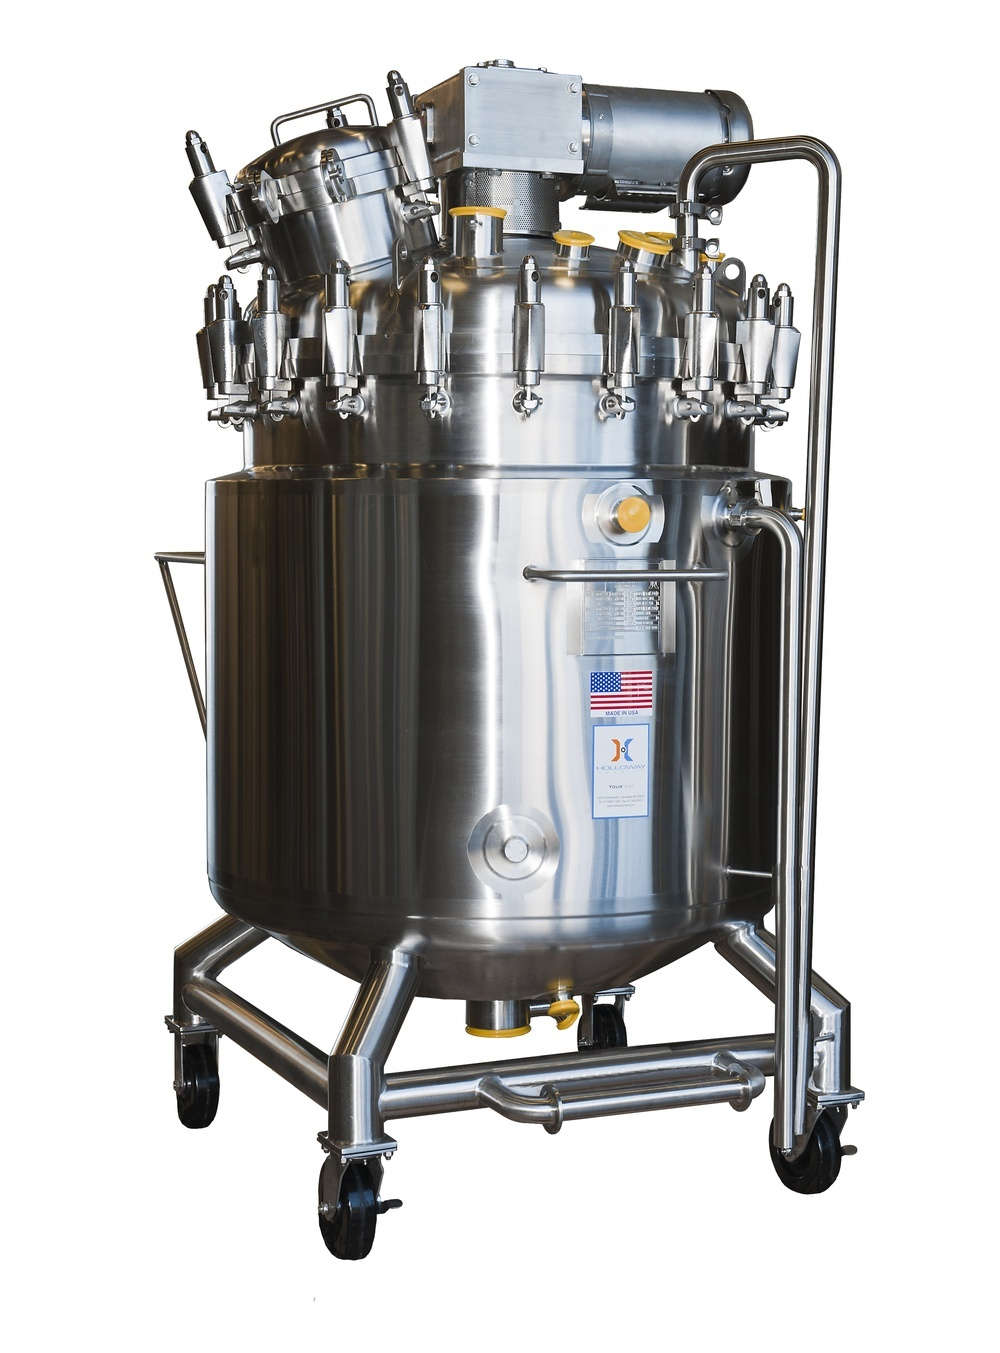 HOLLOWAY crafts stainless steel mixing tanks like the one shown here.